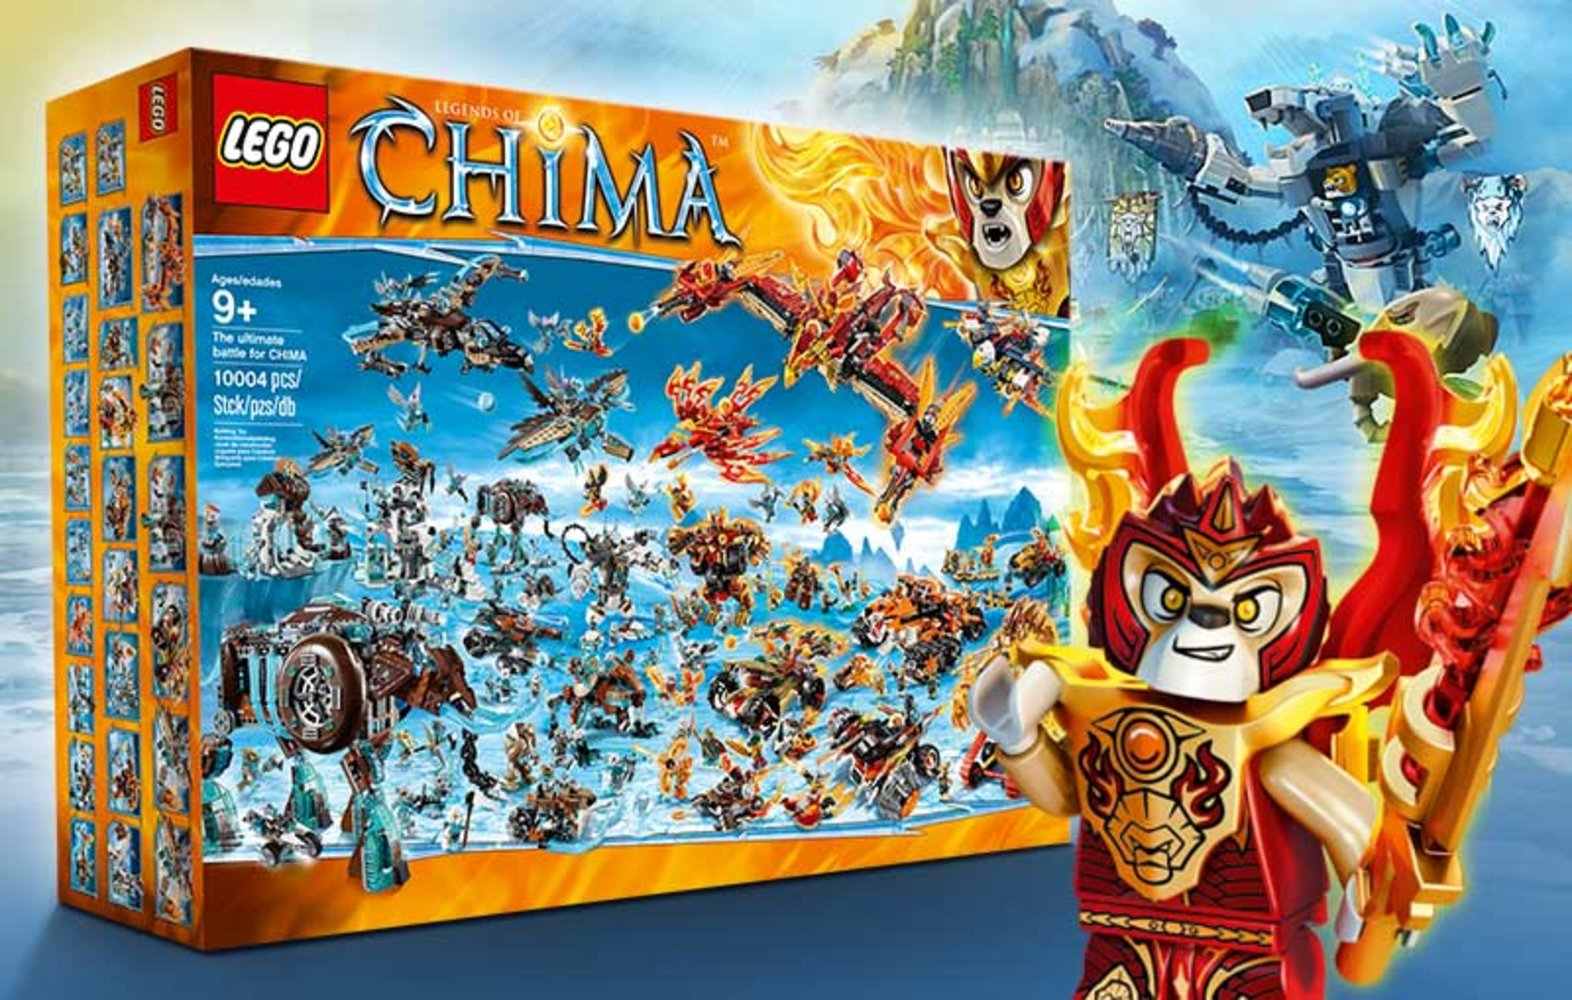 The Ultimate Battle for Chima